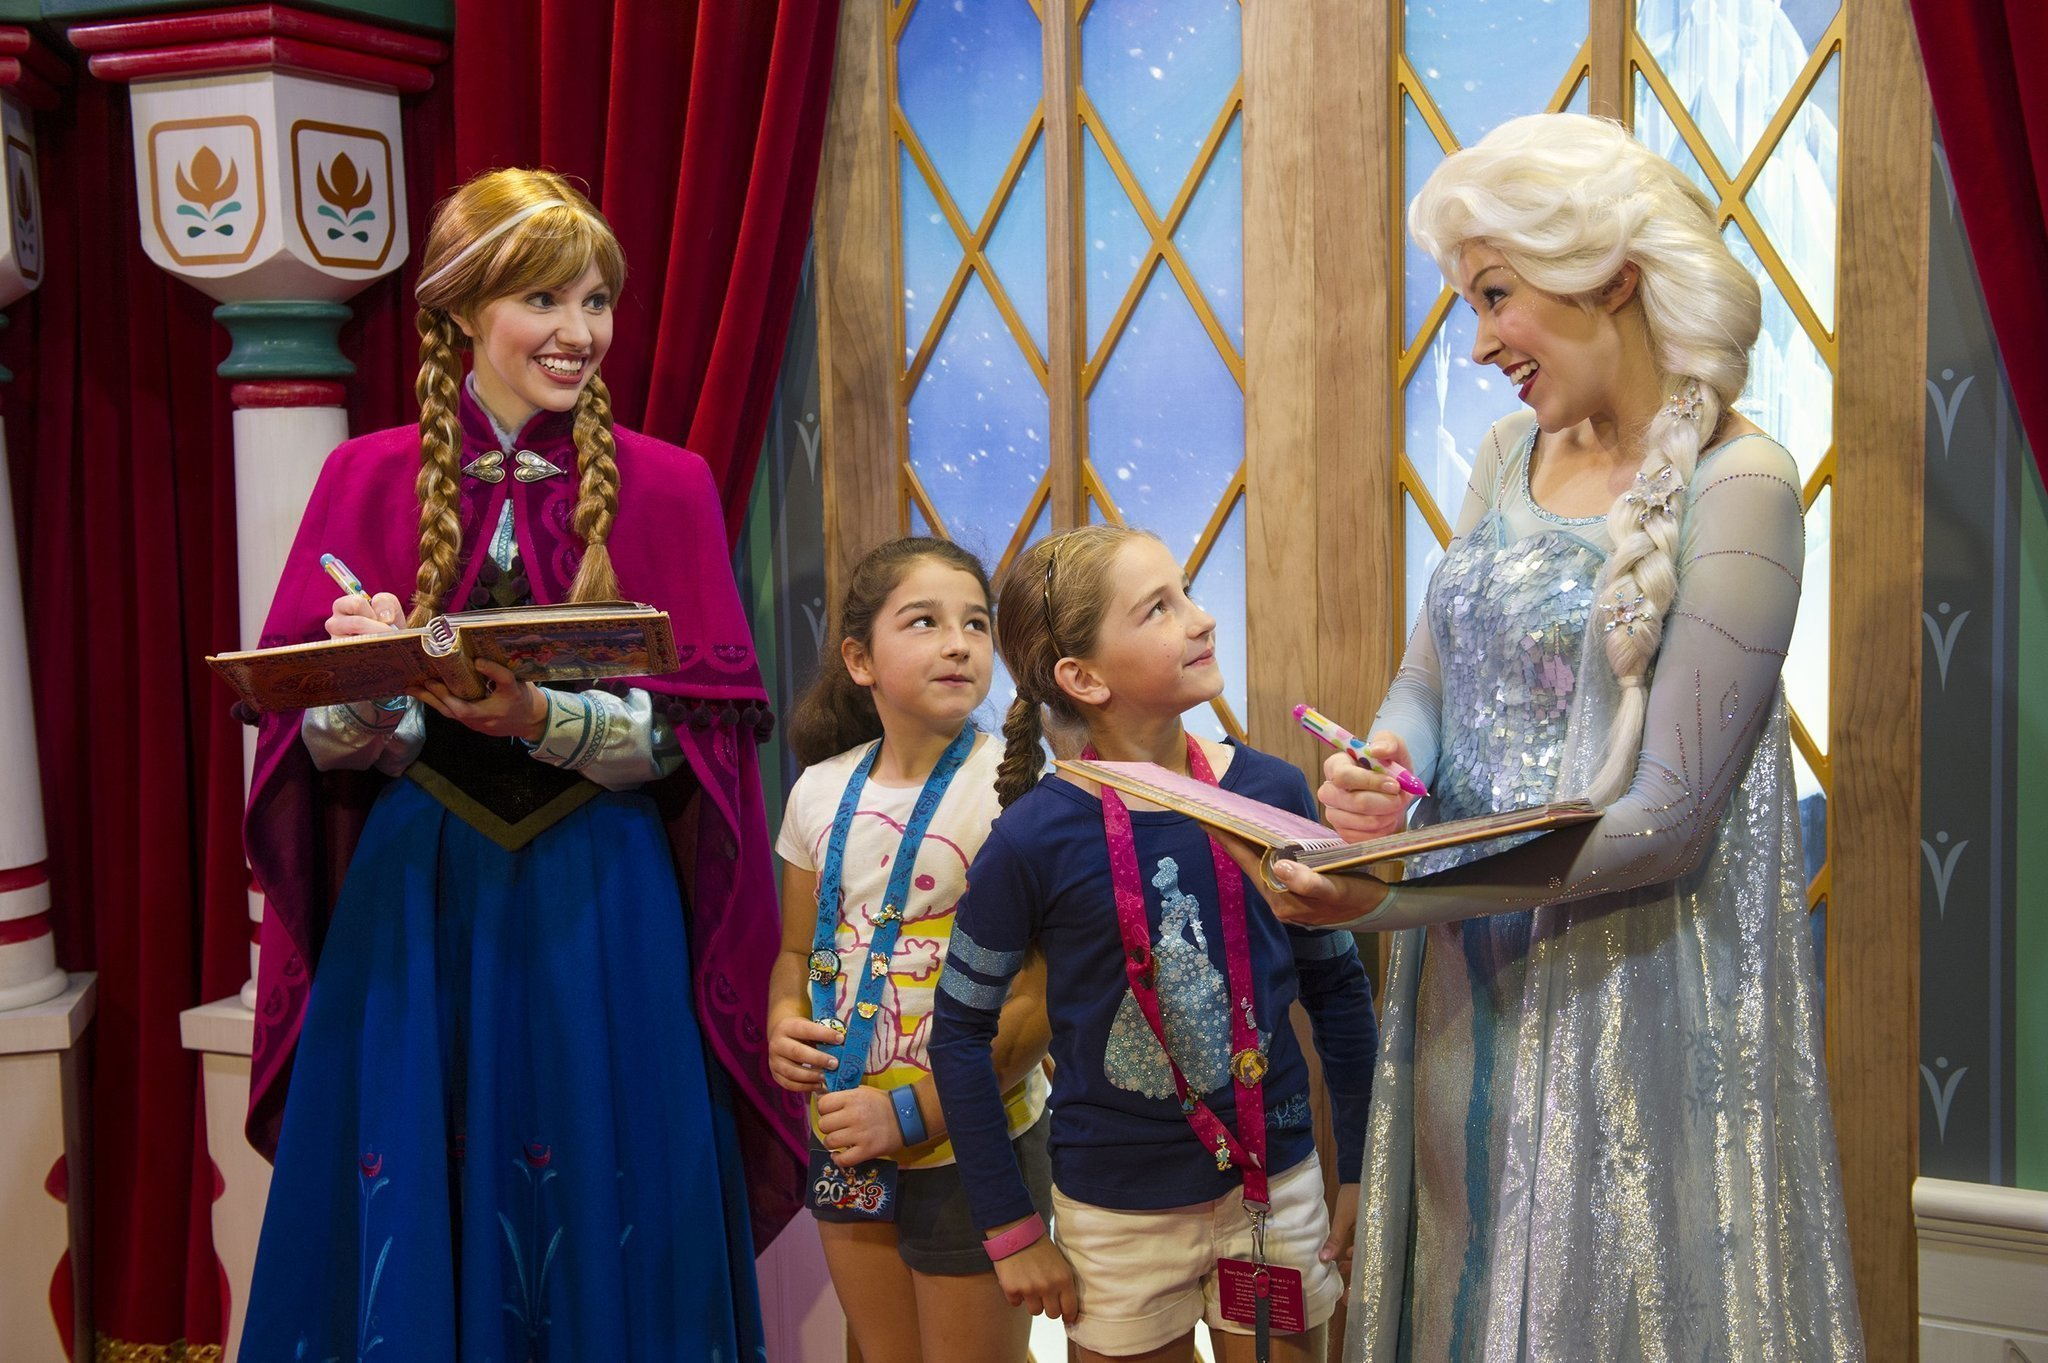 Frozen Characters Join Disney World Greeters The San Diego Union